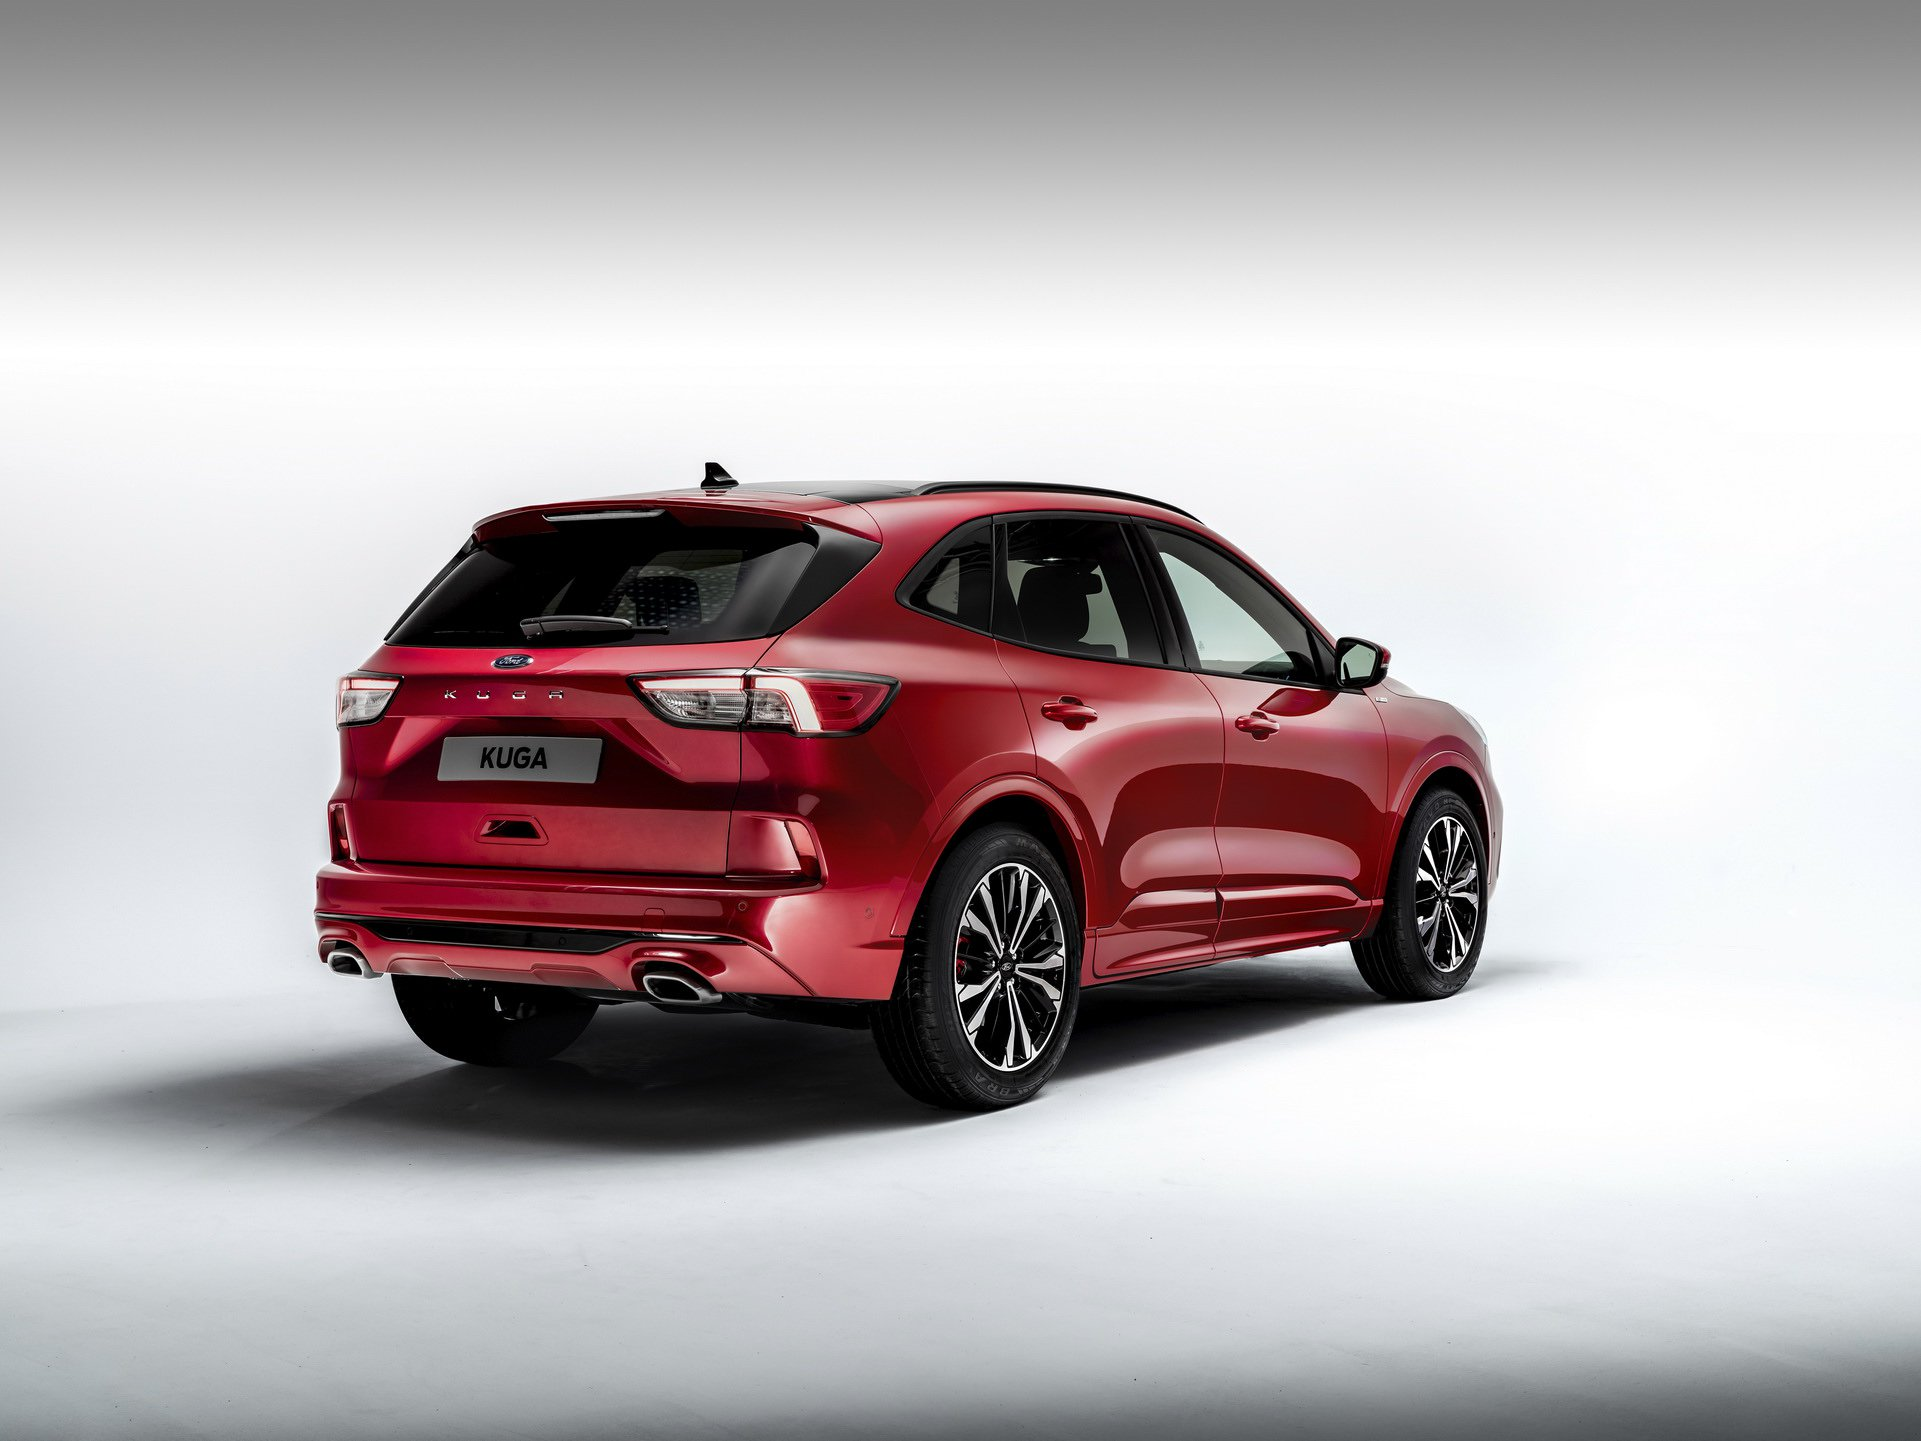 larger-lighter-2020-ford-kuga-debuts-with-three-hybrid-engines_21.jpg